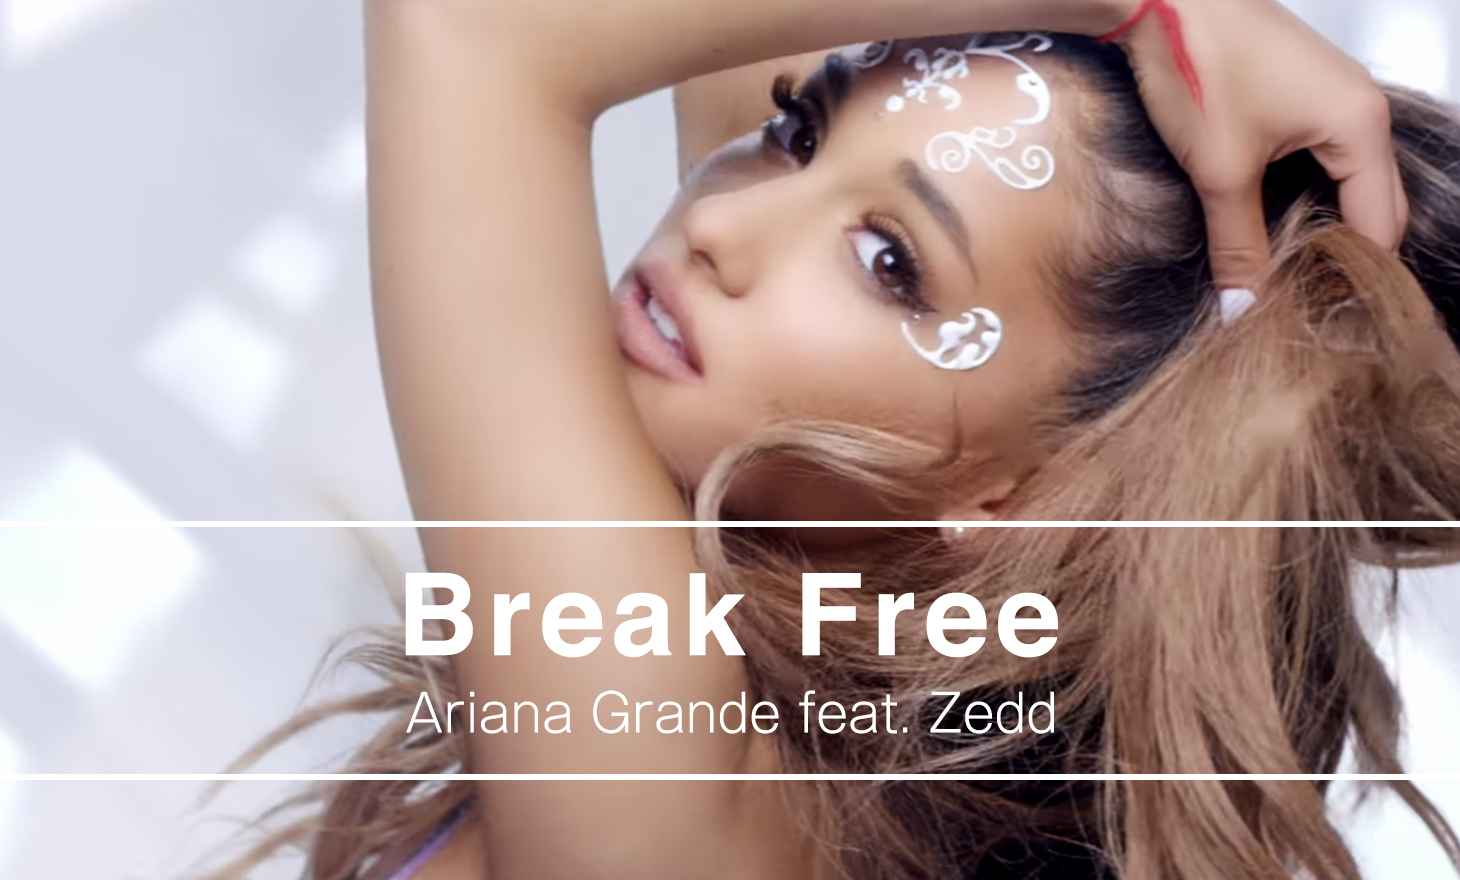 Ariana Grande feat. Zedd : Break Free